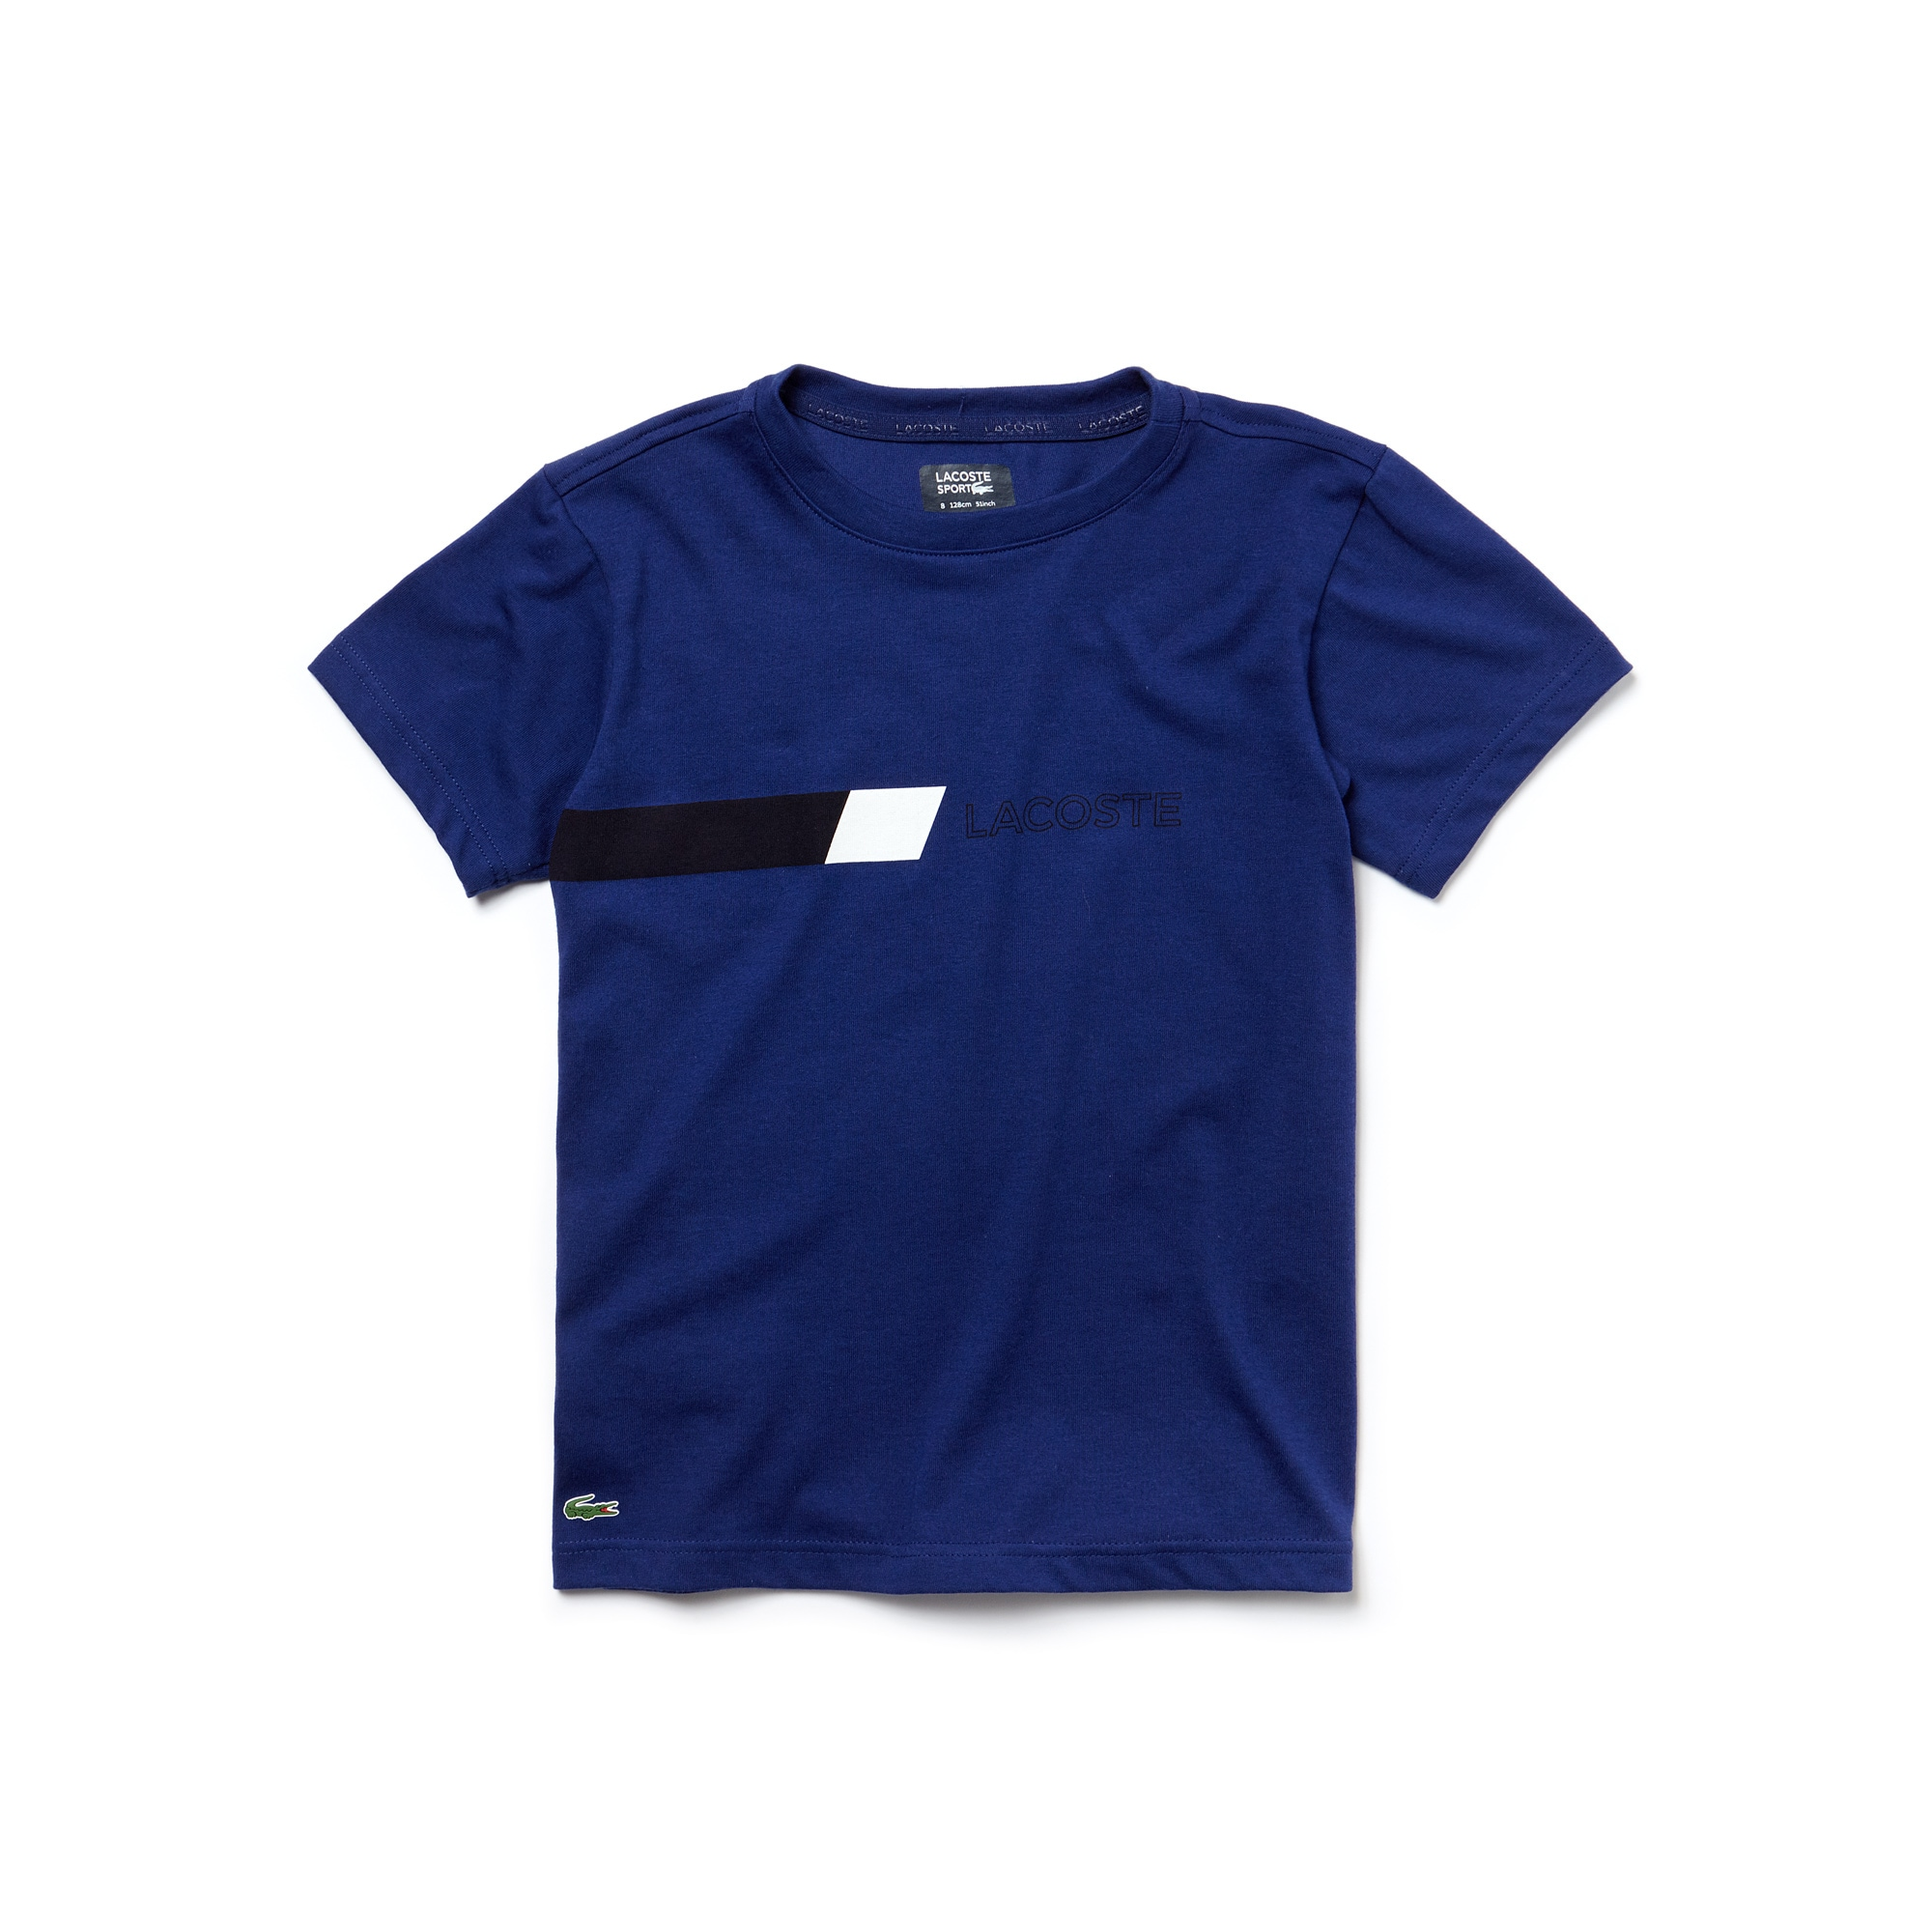 Boys' Lacoste SPORT Tennis Colorblock Accent Jersey T-shirt